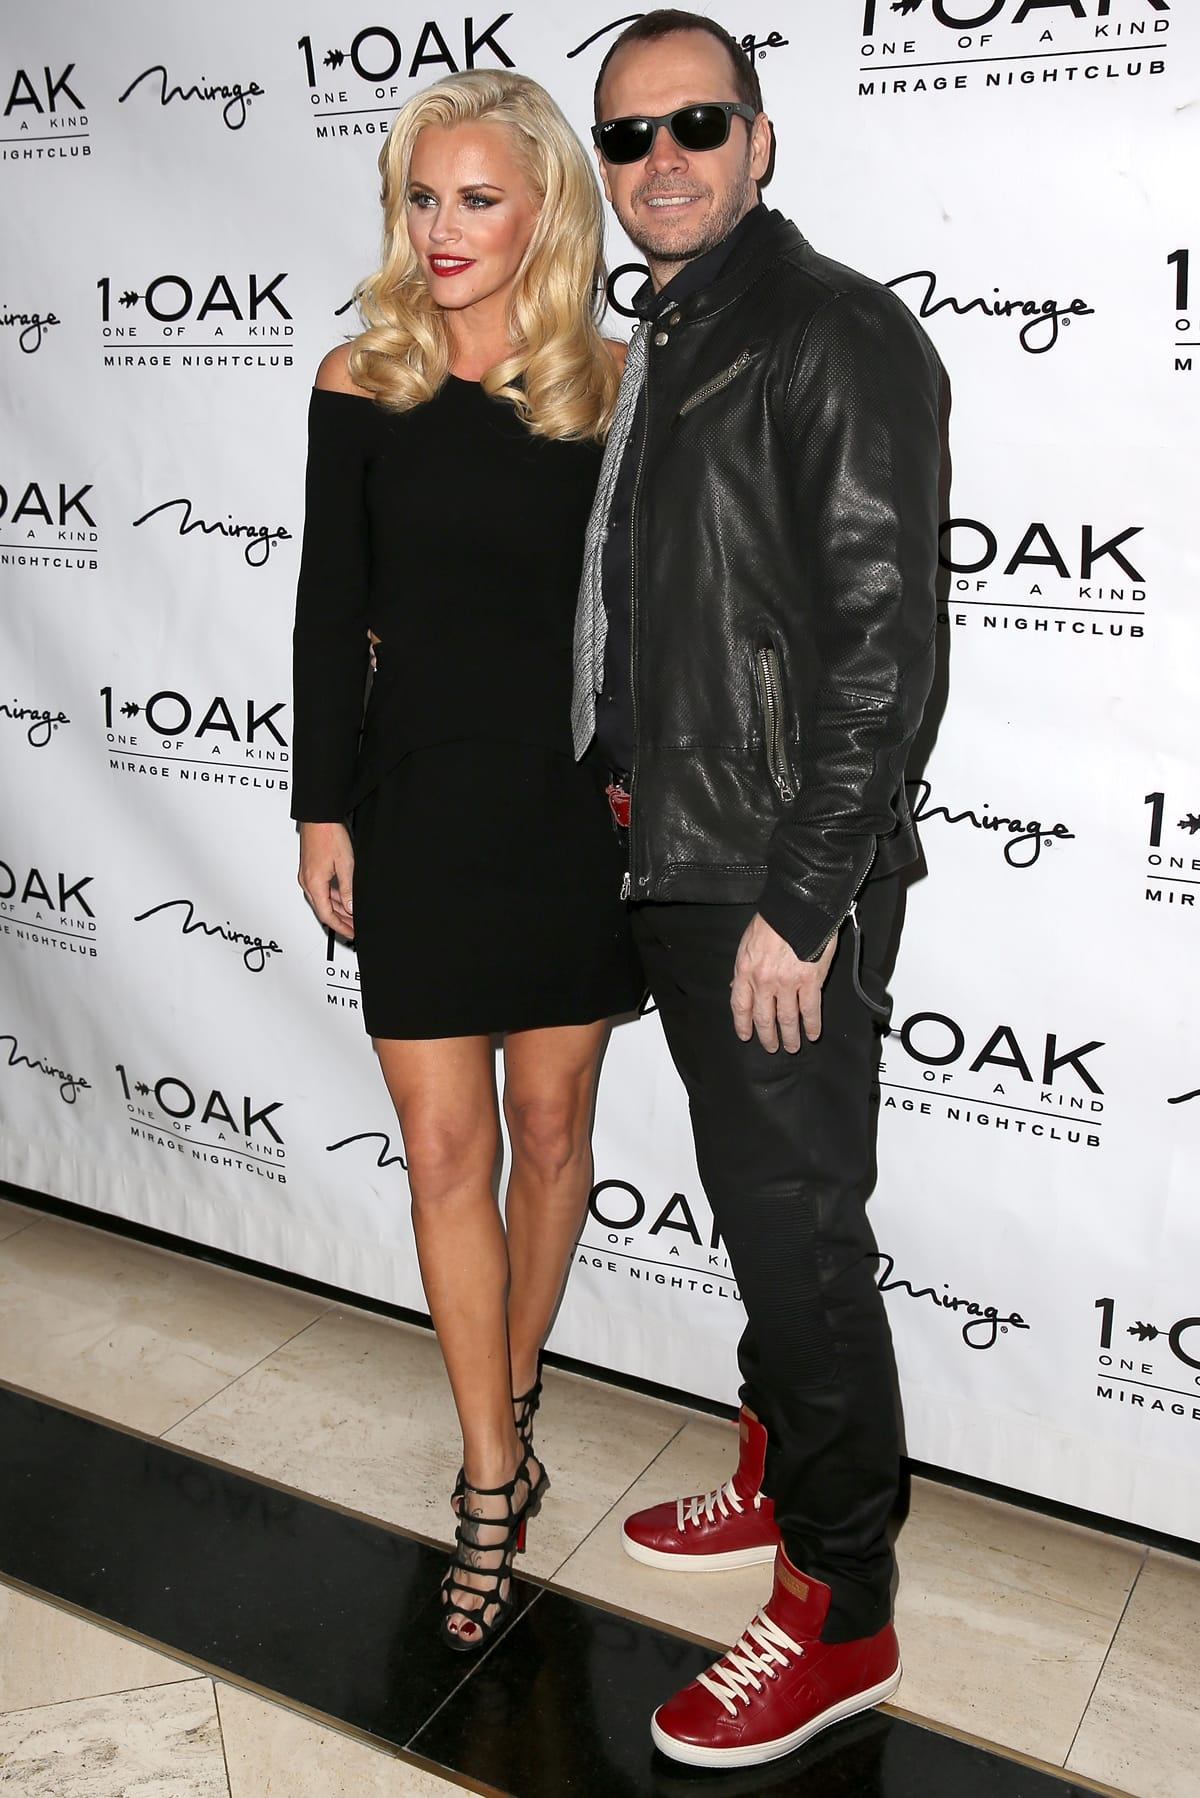 Actress/television host Jenny McCarthy and singer/actor Donnie Wahlberg arrive at 1 OAK Nightclub